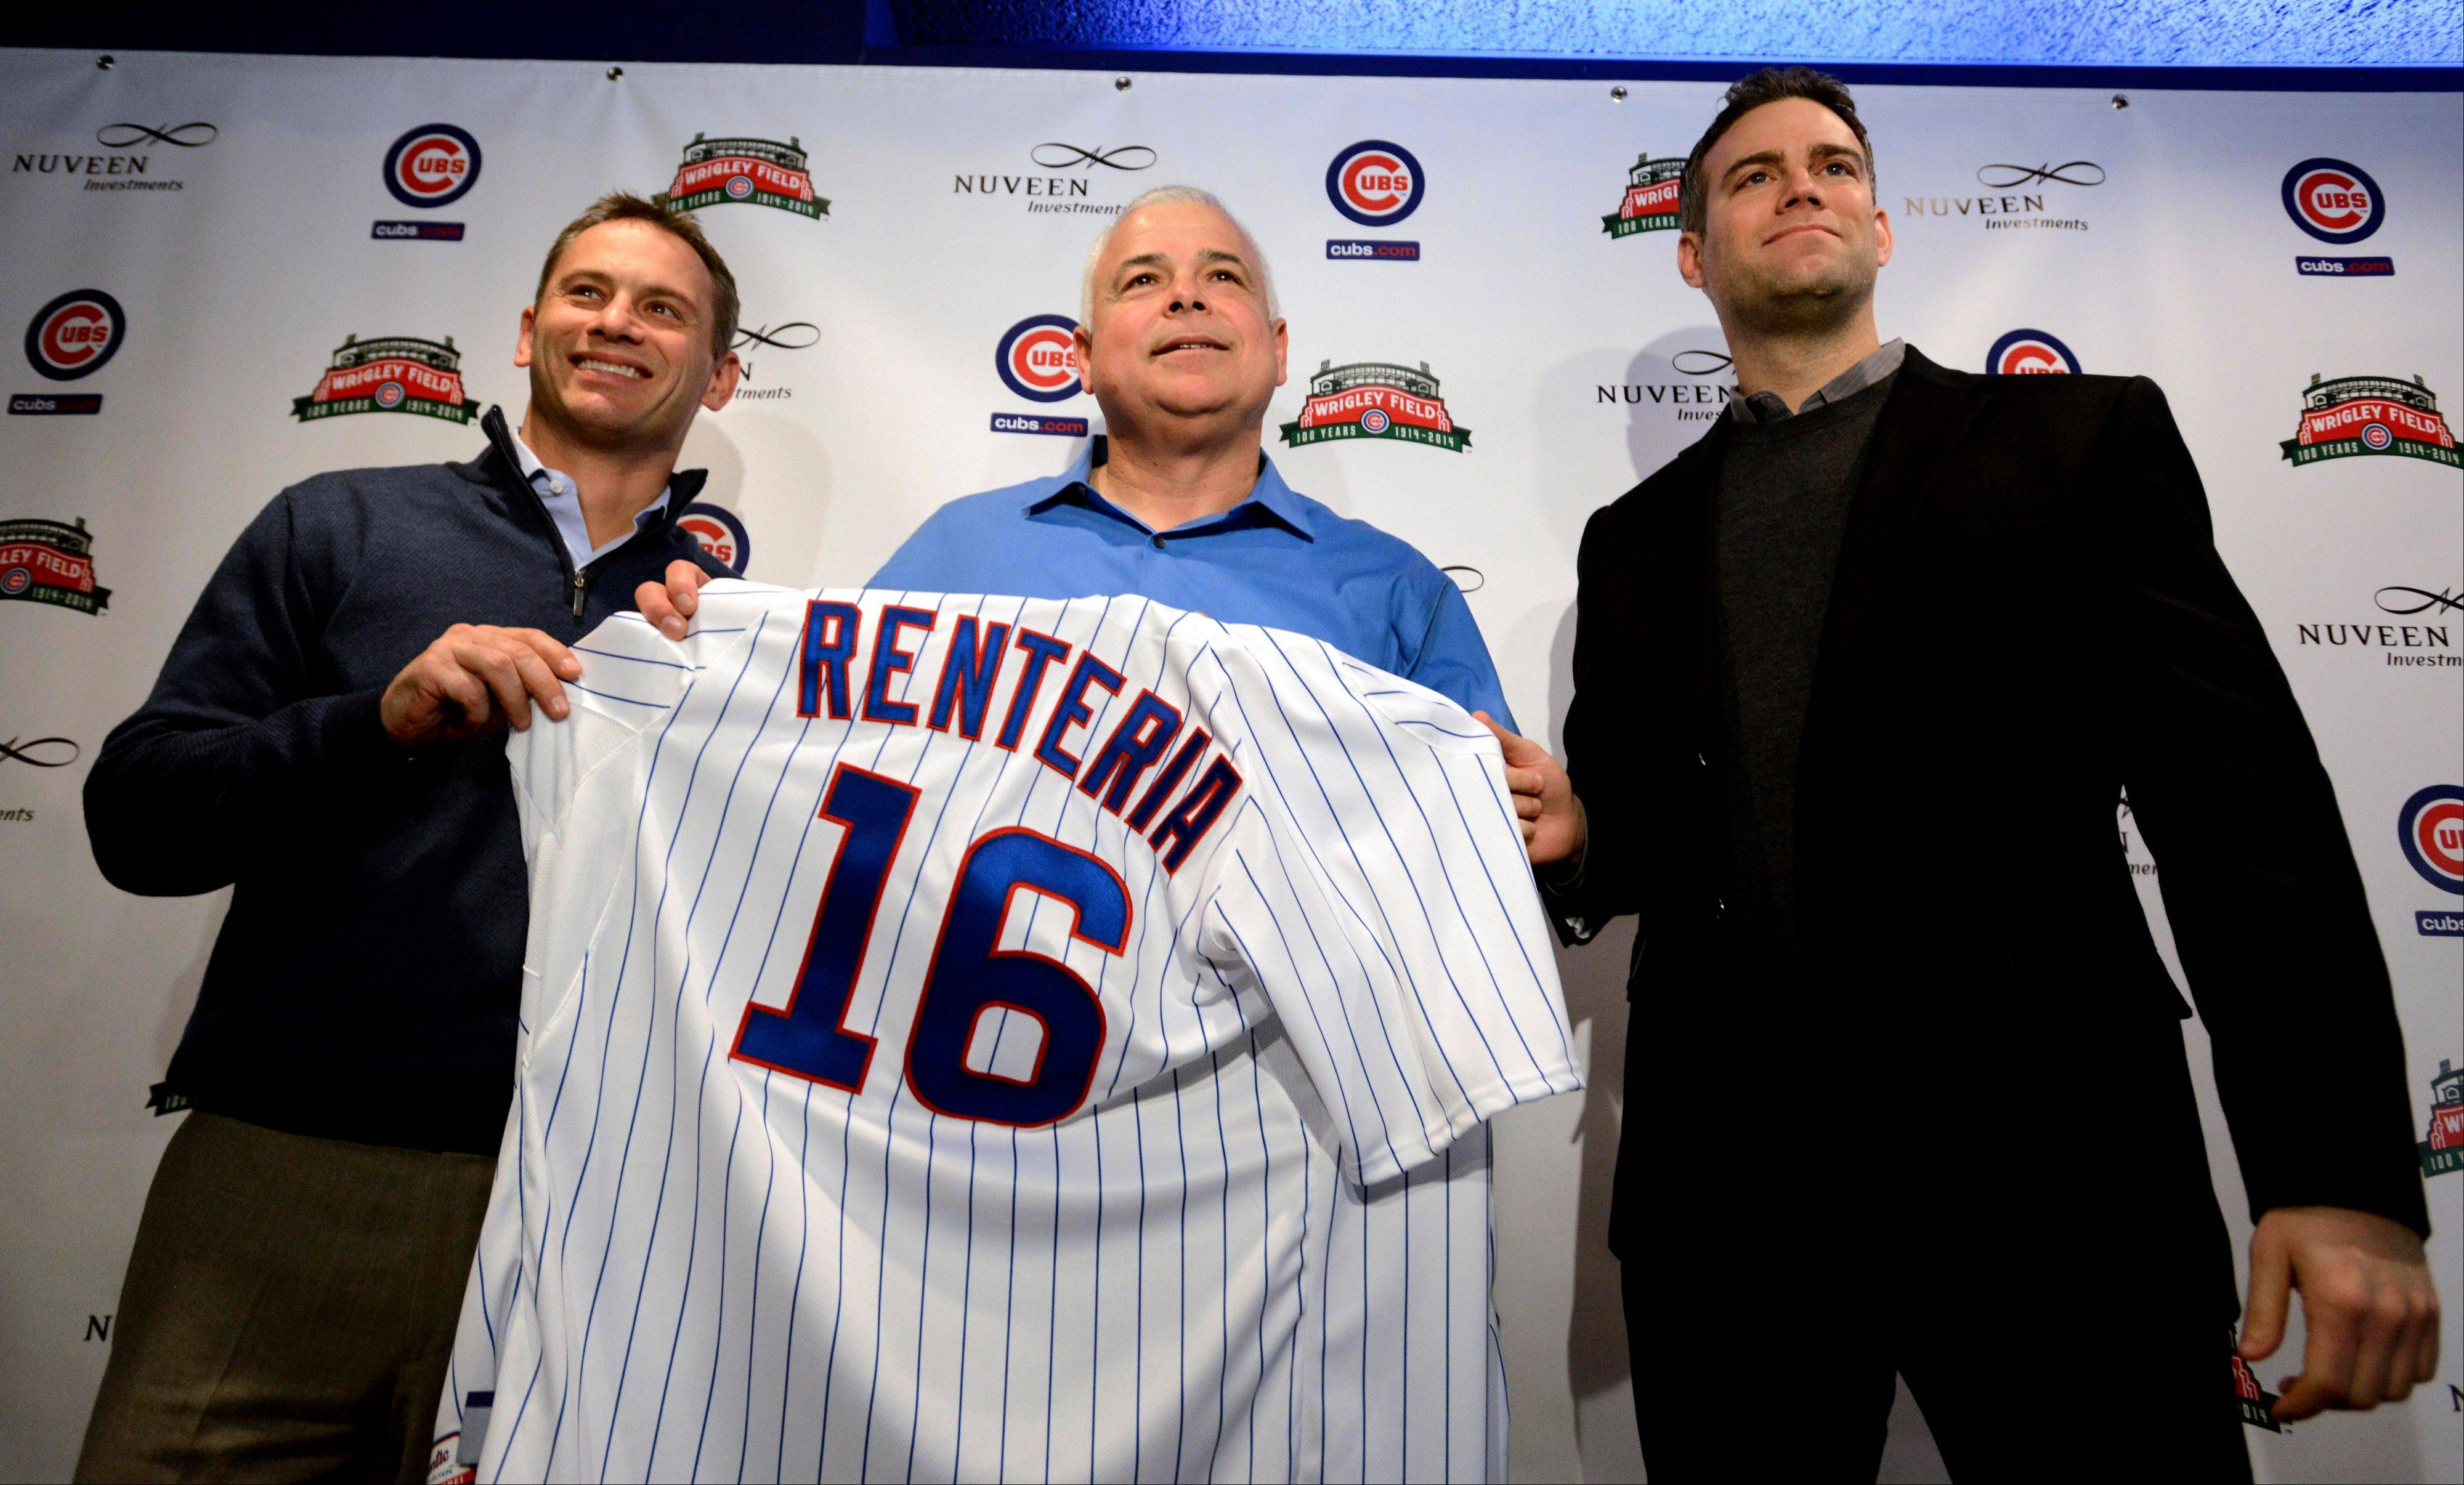 Cubs new manager Rick Renteria, center, receives a jersey from Chicago Cubs President of Baseball Operations Theo Epstein, right, and Chicago Cubs Vice President and General Manager Jed Hoyer during a press conference at Wrigley Field in Chicago, Thursday, Dec., 5, 2013. Renteria met with the media for the first time since he was hired last month while recuperating in San Diego from hip surgery.